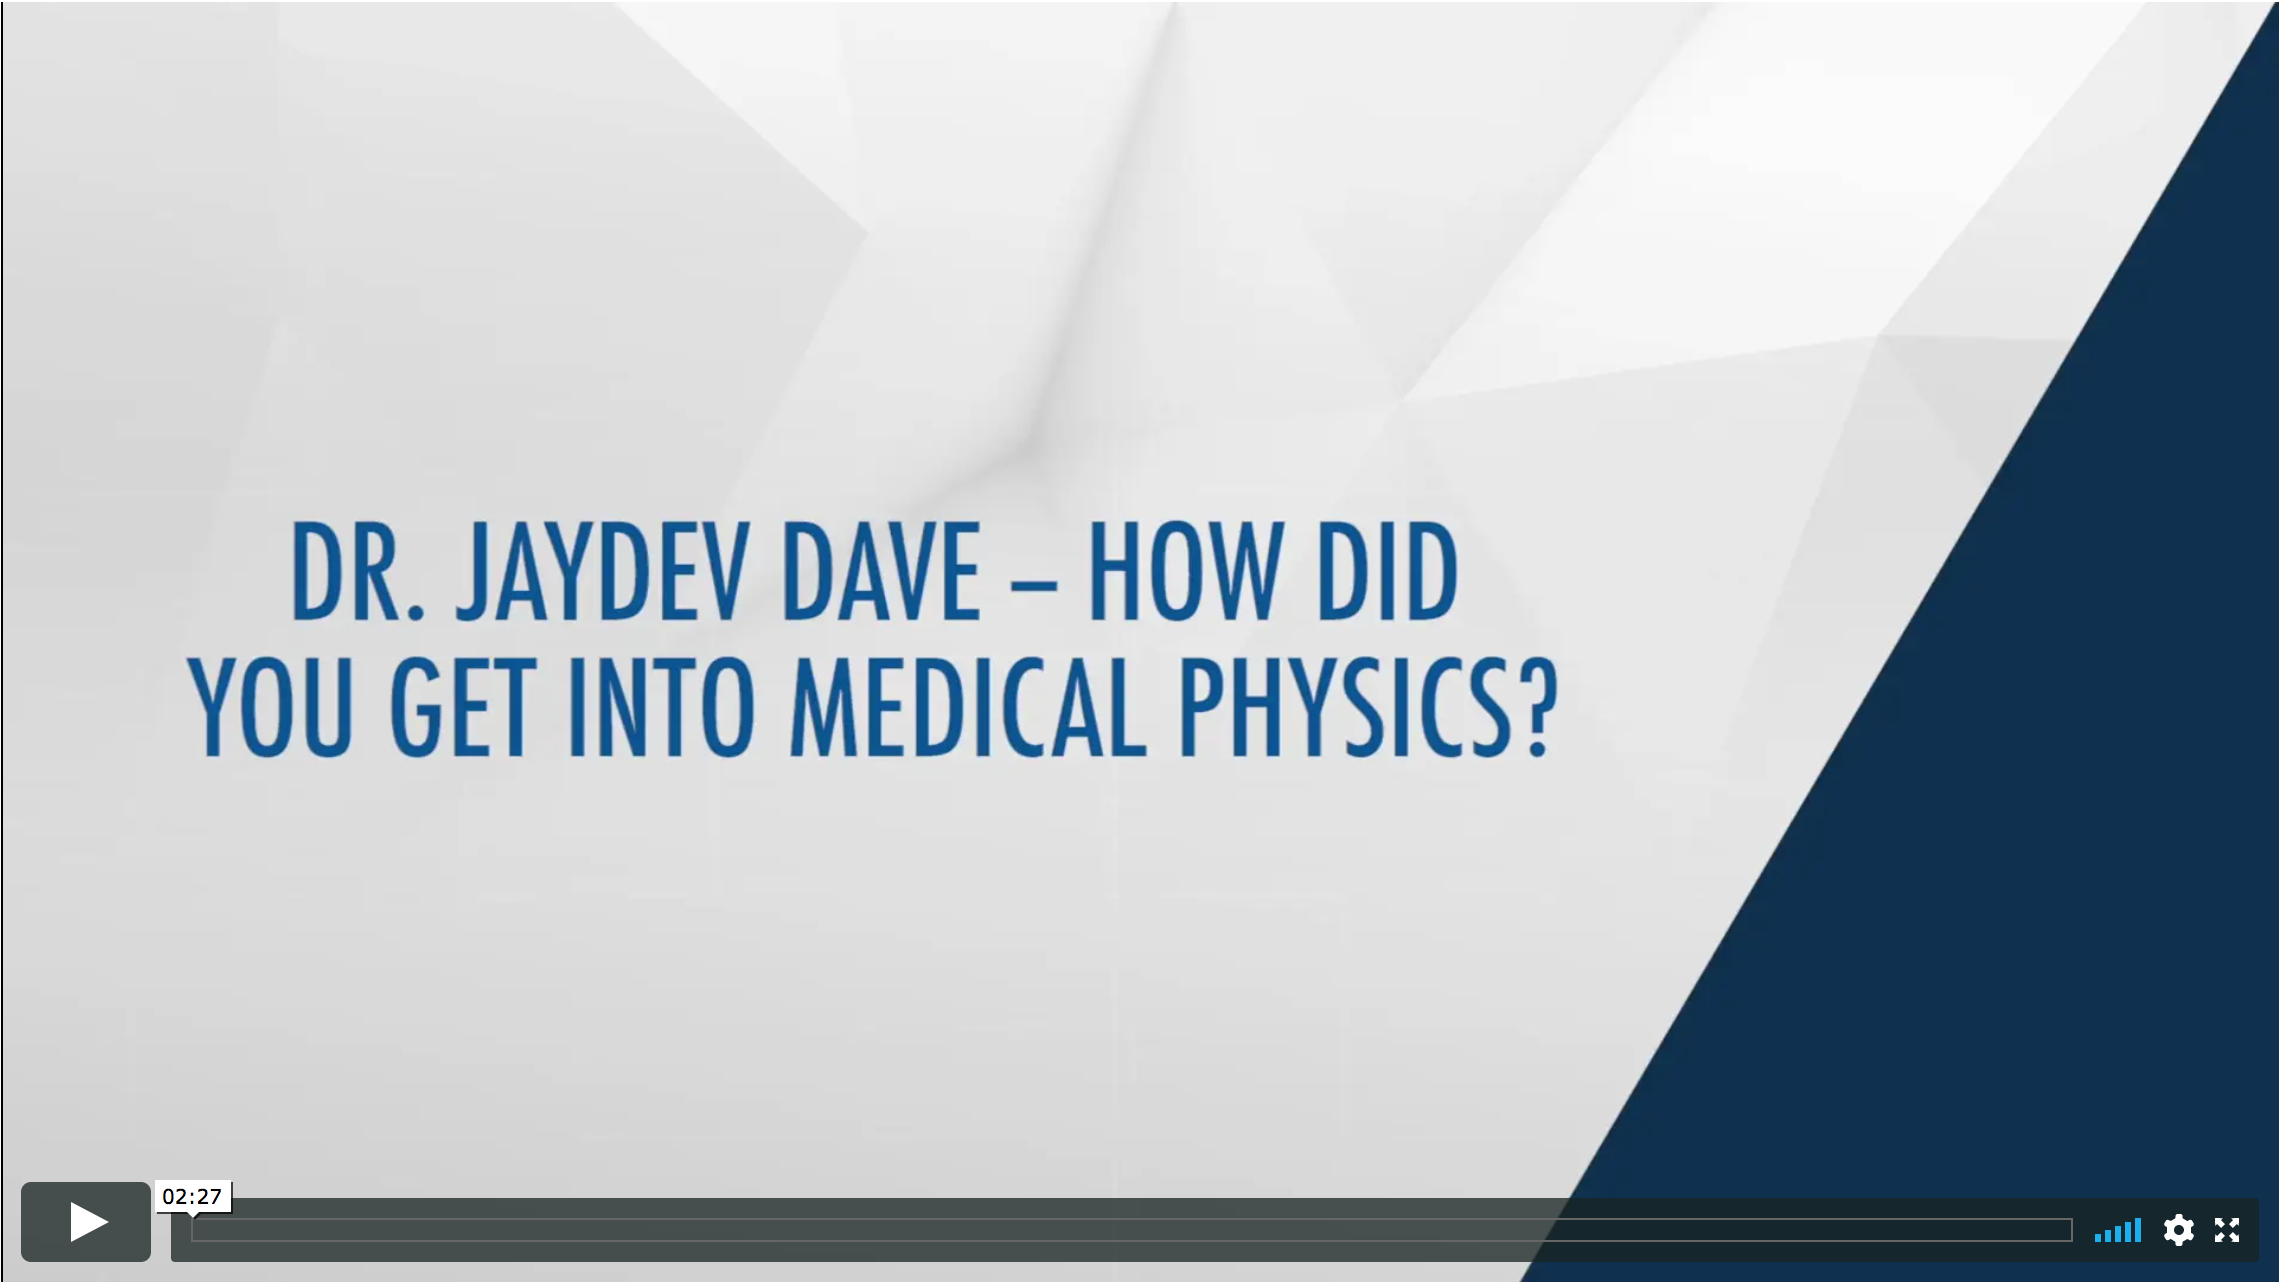 Dr. Jaydev Dave - How did you get into Medical Physics? Video Thumbnail